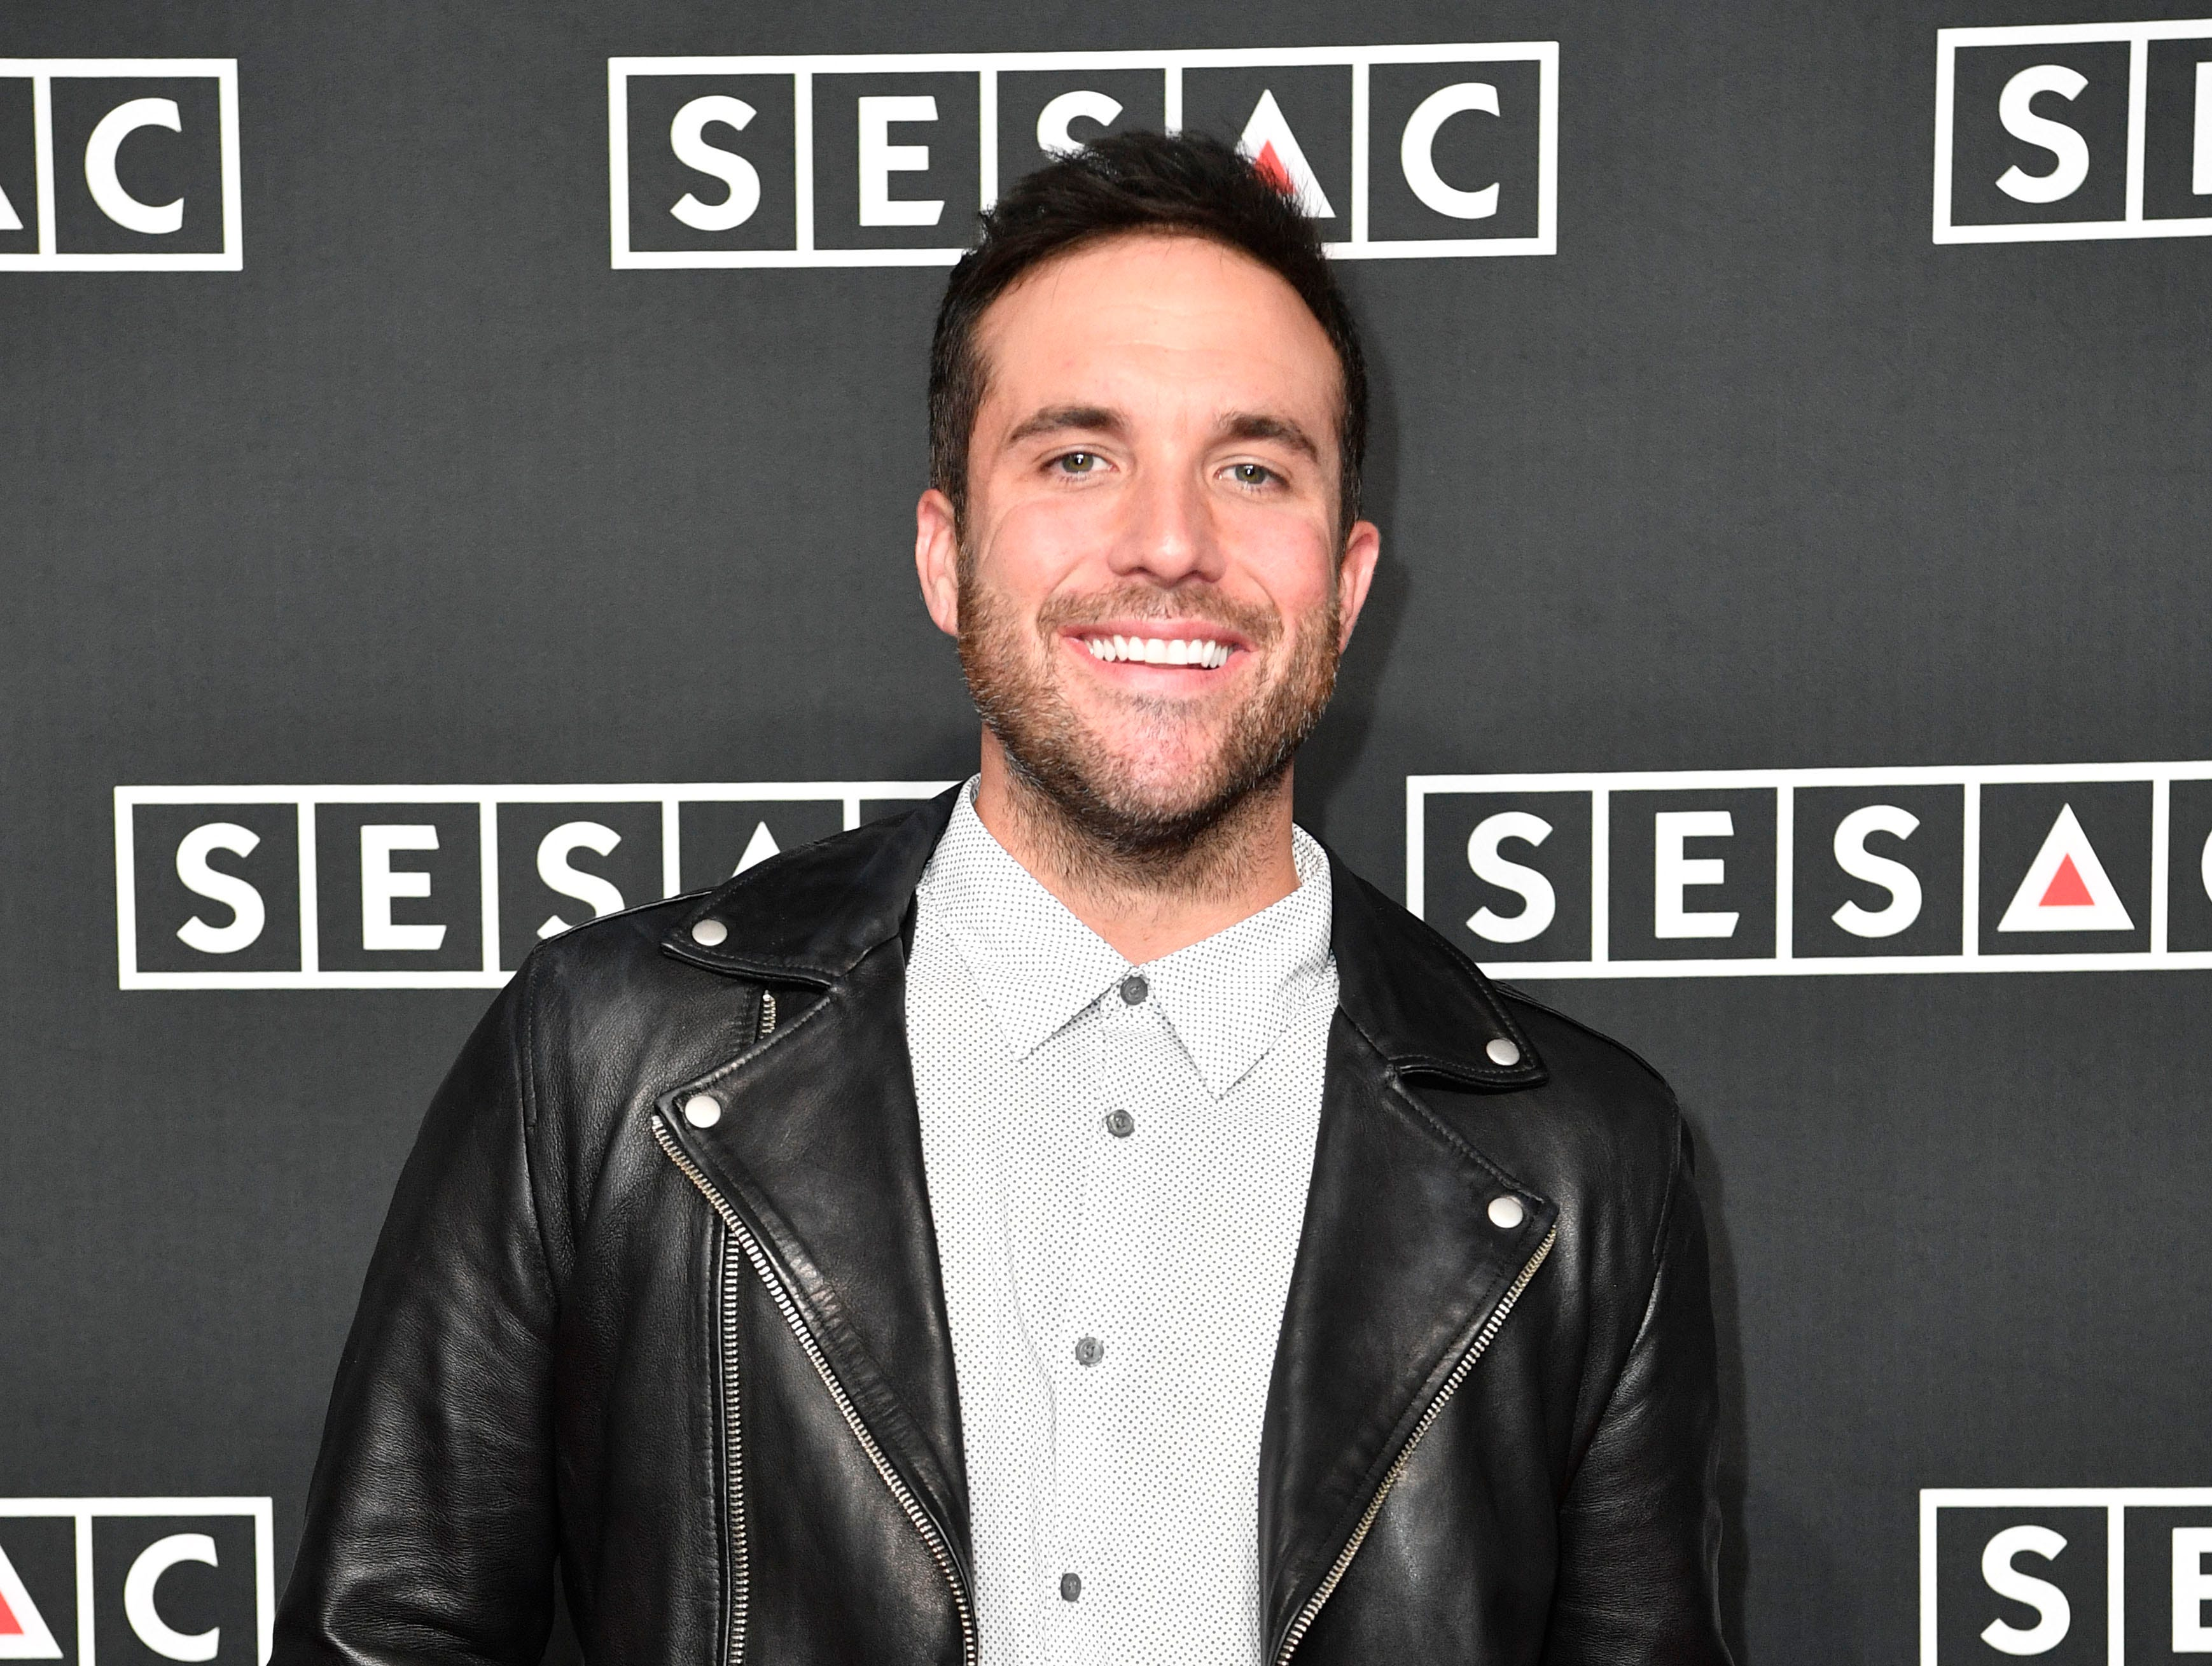 Tyler Rich on the red carpet at the SESAC Nashville Music Awards at the Country Music Hall of Fame and Museum Sunday Nov. 11, 2018, in Nashville, Tenn.